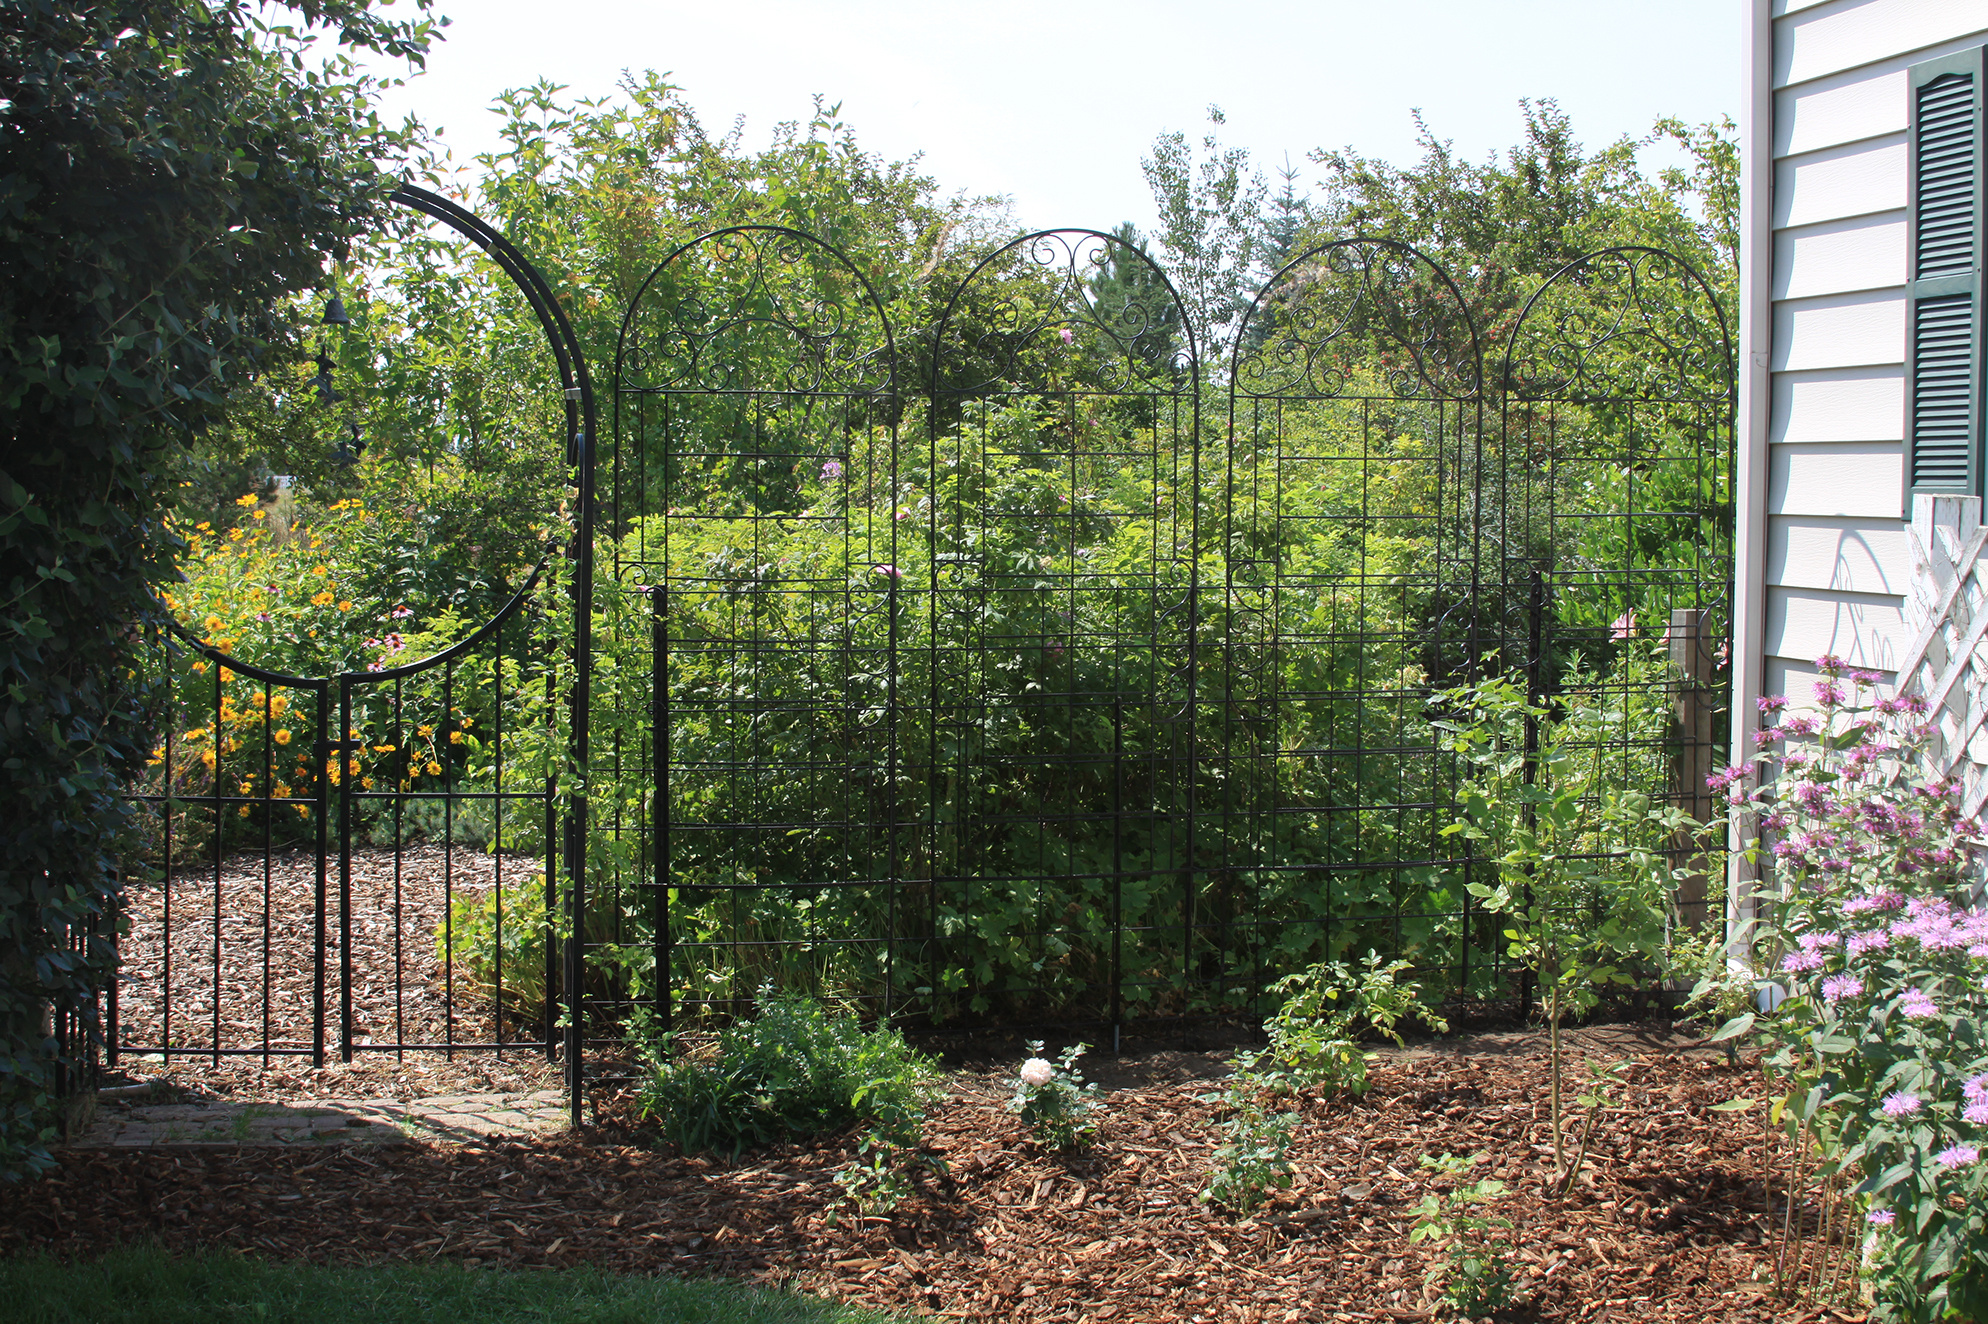 in the garden trellises transform look of fence the - Garden Trellises